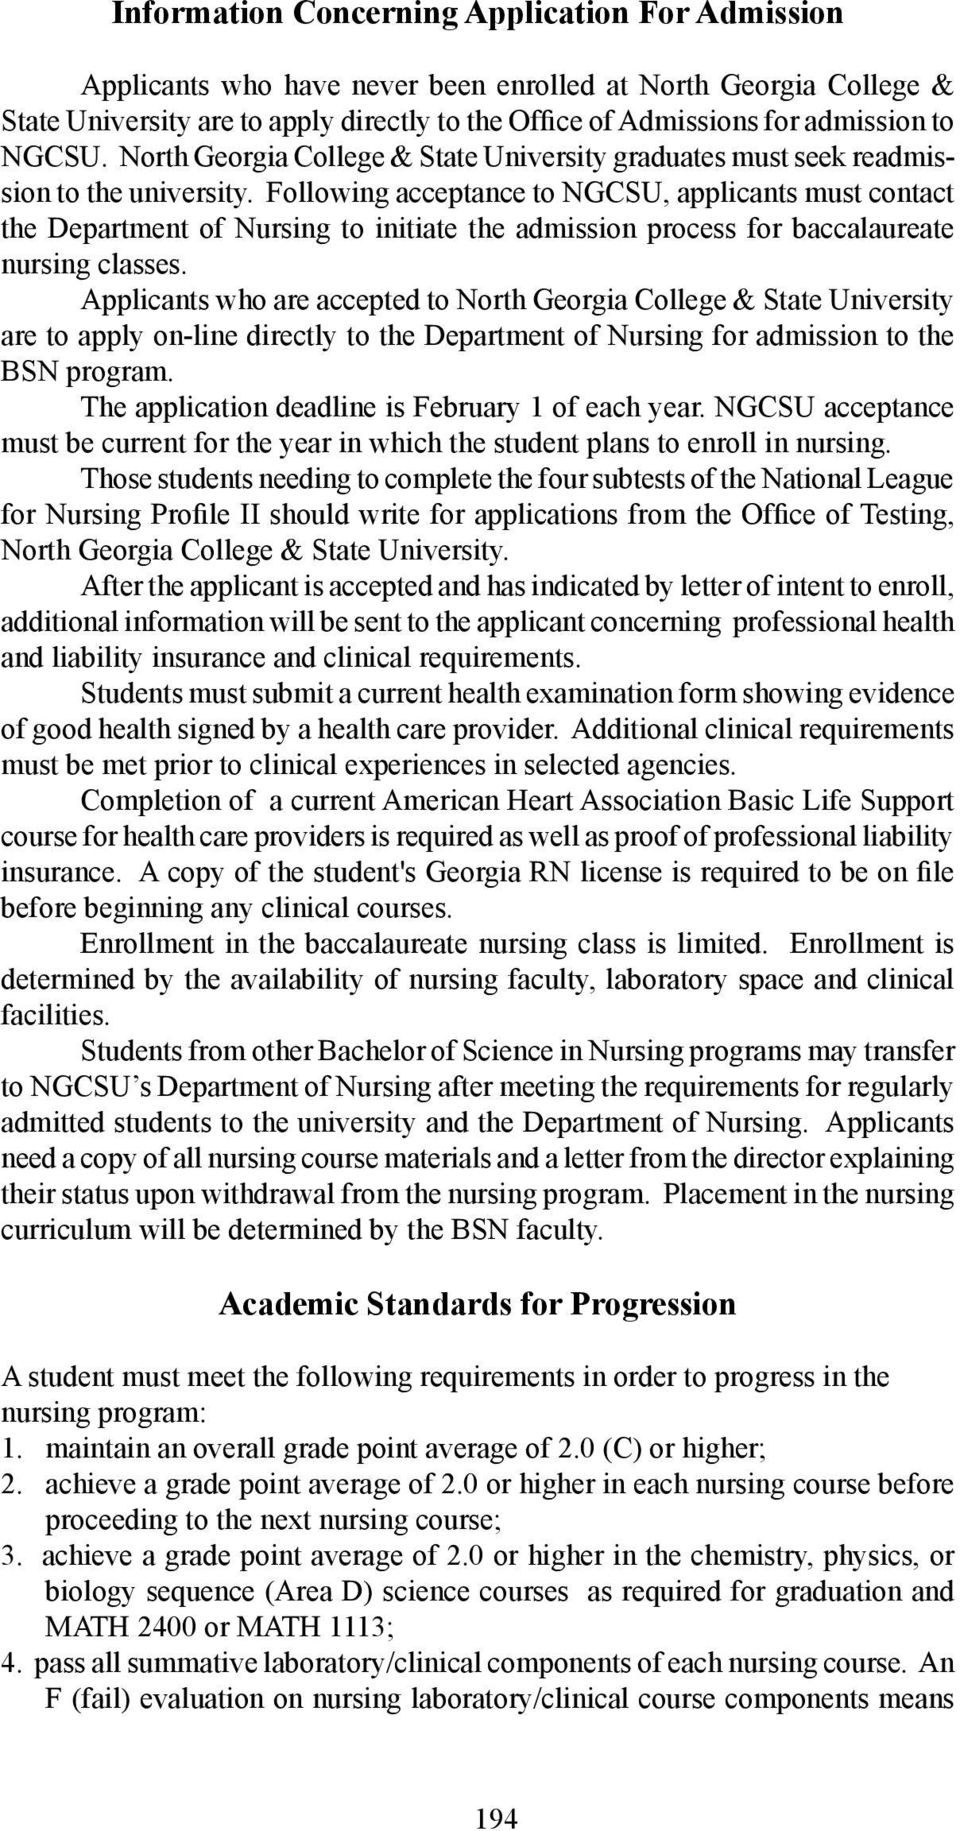 Following acceptance to NGCSU, applicants must contact the Department of Nursing to initiate the admission process for baccalaureate nursing classes.